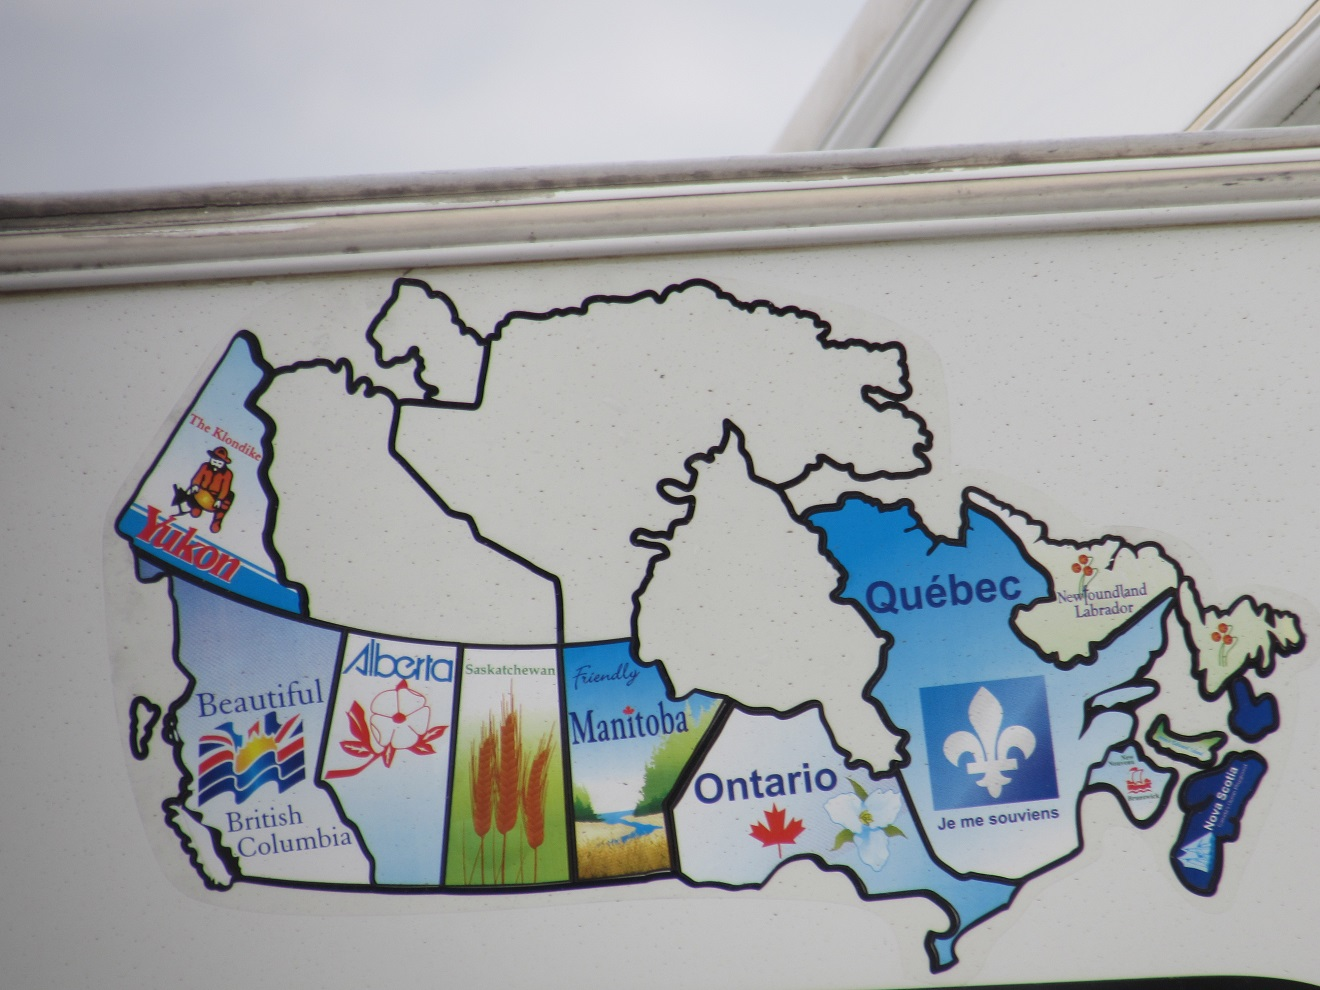 on friday morning we took pictures of the maps we have finally put on the slideout they show all of the provinces and states that we have been in with the